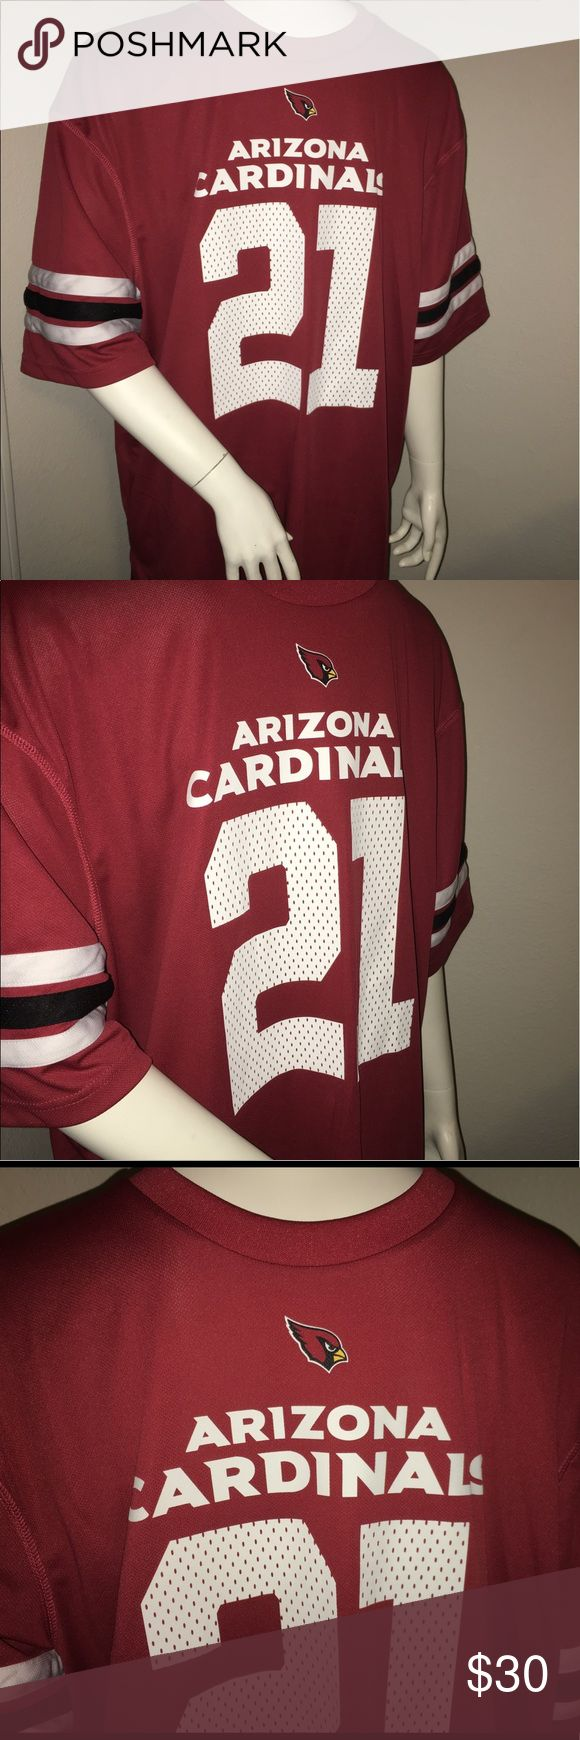 """Az Cardinals Patrick Peterson Jersey shirt XL Thank you for viewing my listing, for sale is a men's, Arizona Cardinals, red, short sleeve, jersey style T-shirt. This T-shirt has the material of a jersey has the screen print of a jersey but is a shirt.   Player: Patrick Peterson!  Sz: XL  If you have any questions or would like additional photos please feel free to ask.   From under one arm to under the other measures appx 25"""" from the top of the shoulder to the bottom of the shirt measures…"""